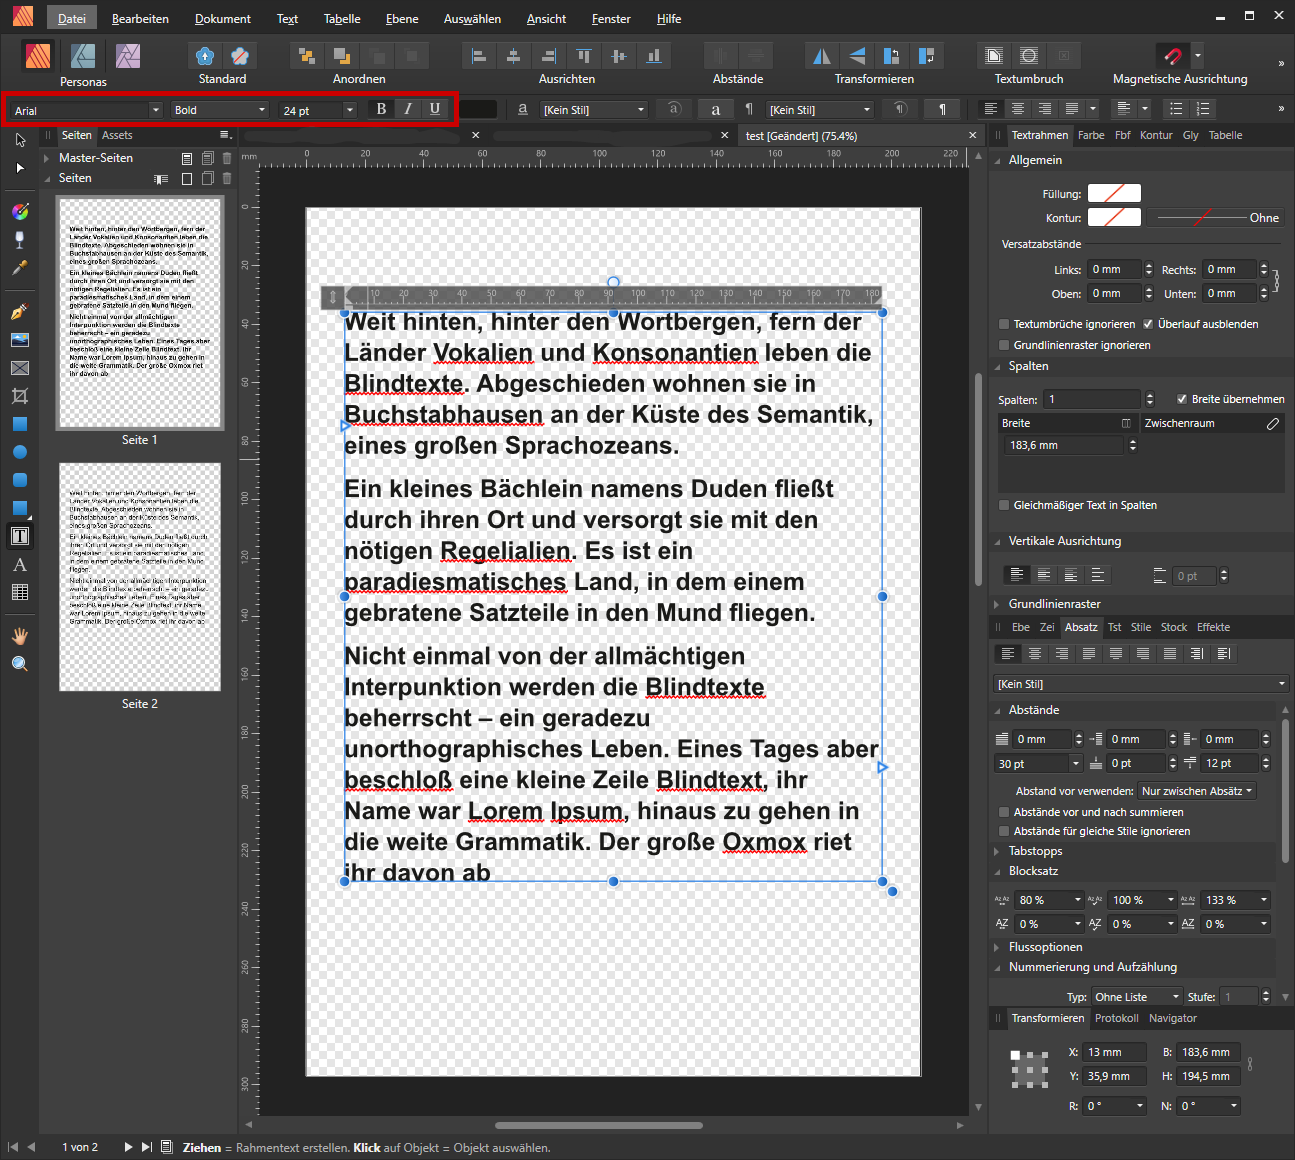 afpub: PDF export issue with font encoding - Affinity on